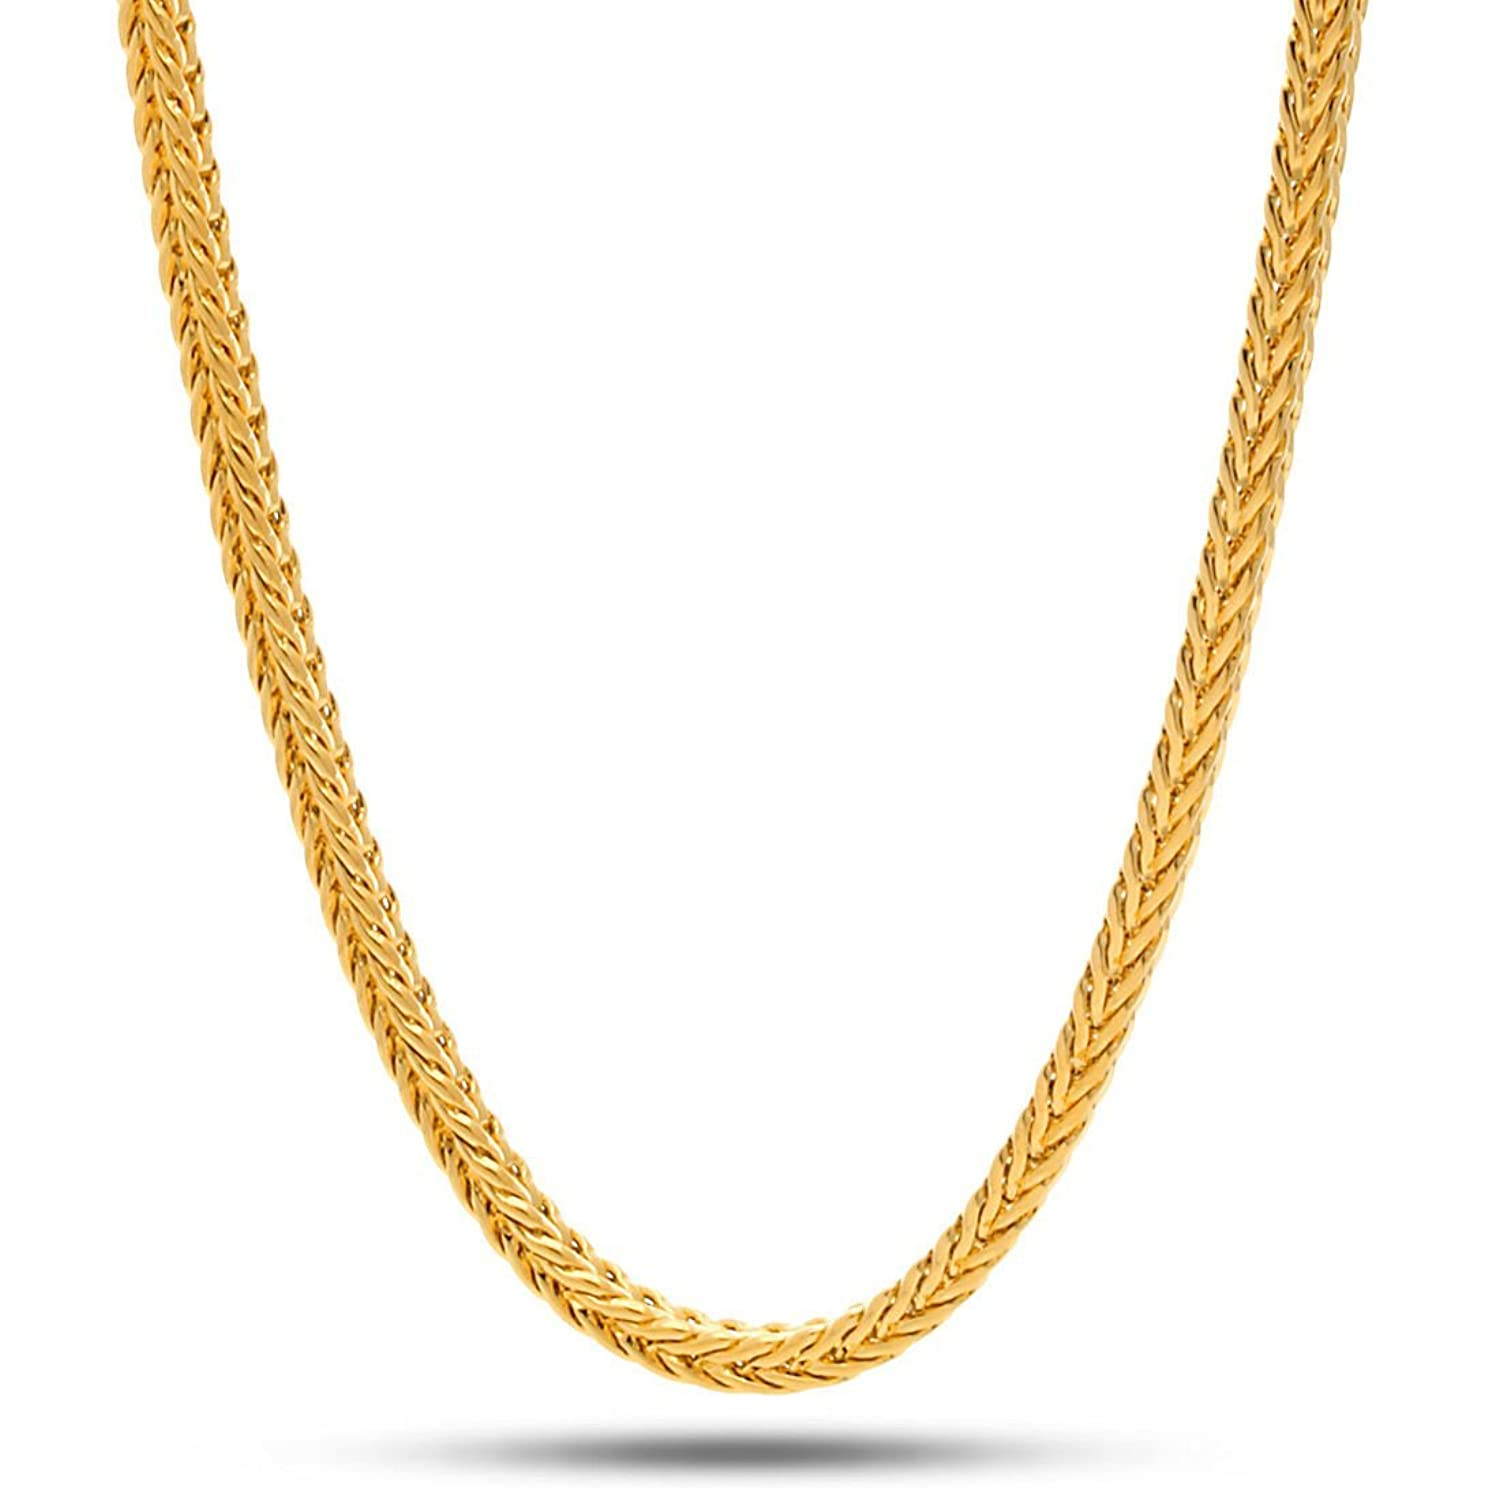 necklace men link chains gold chain jewelry mene to vs goldmatters simple now costco a round karat compare steemit